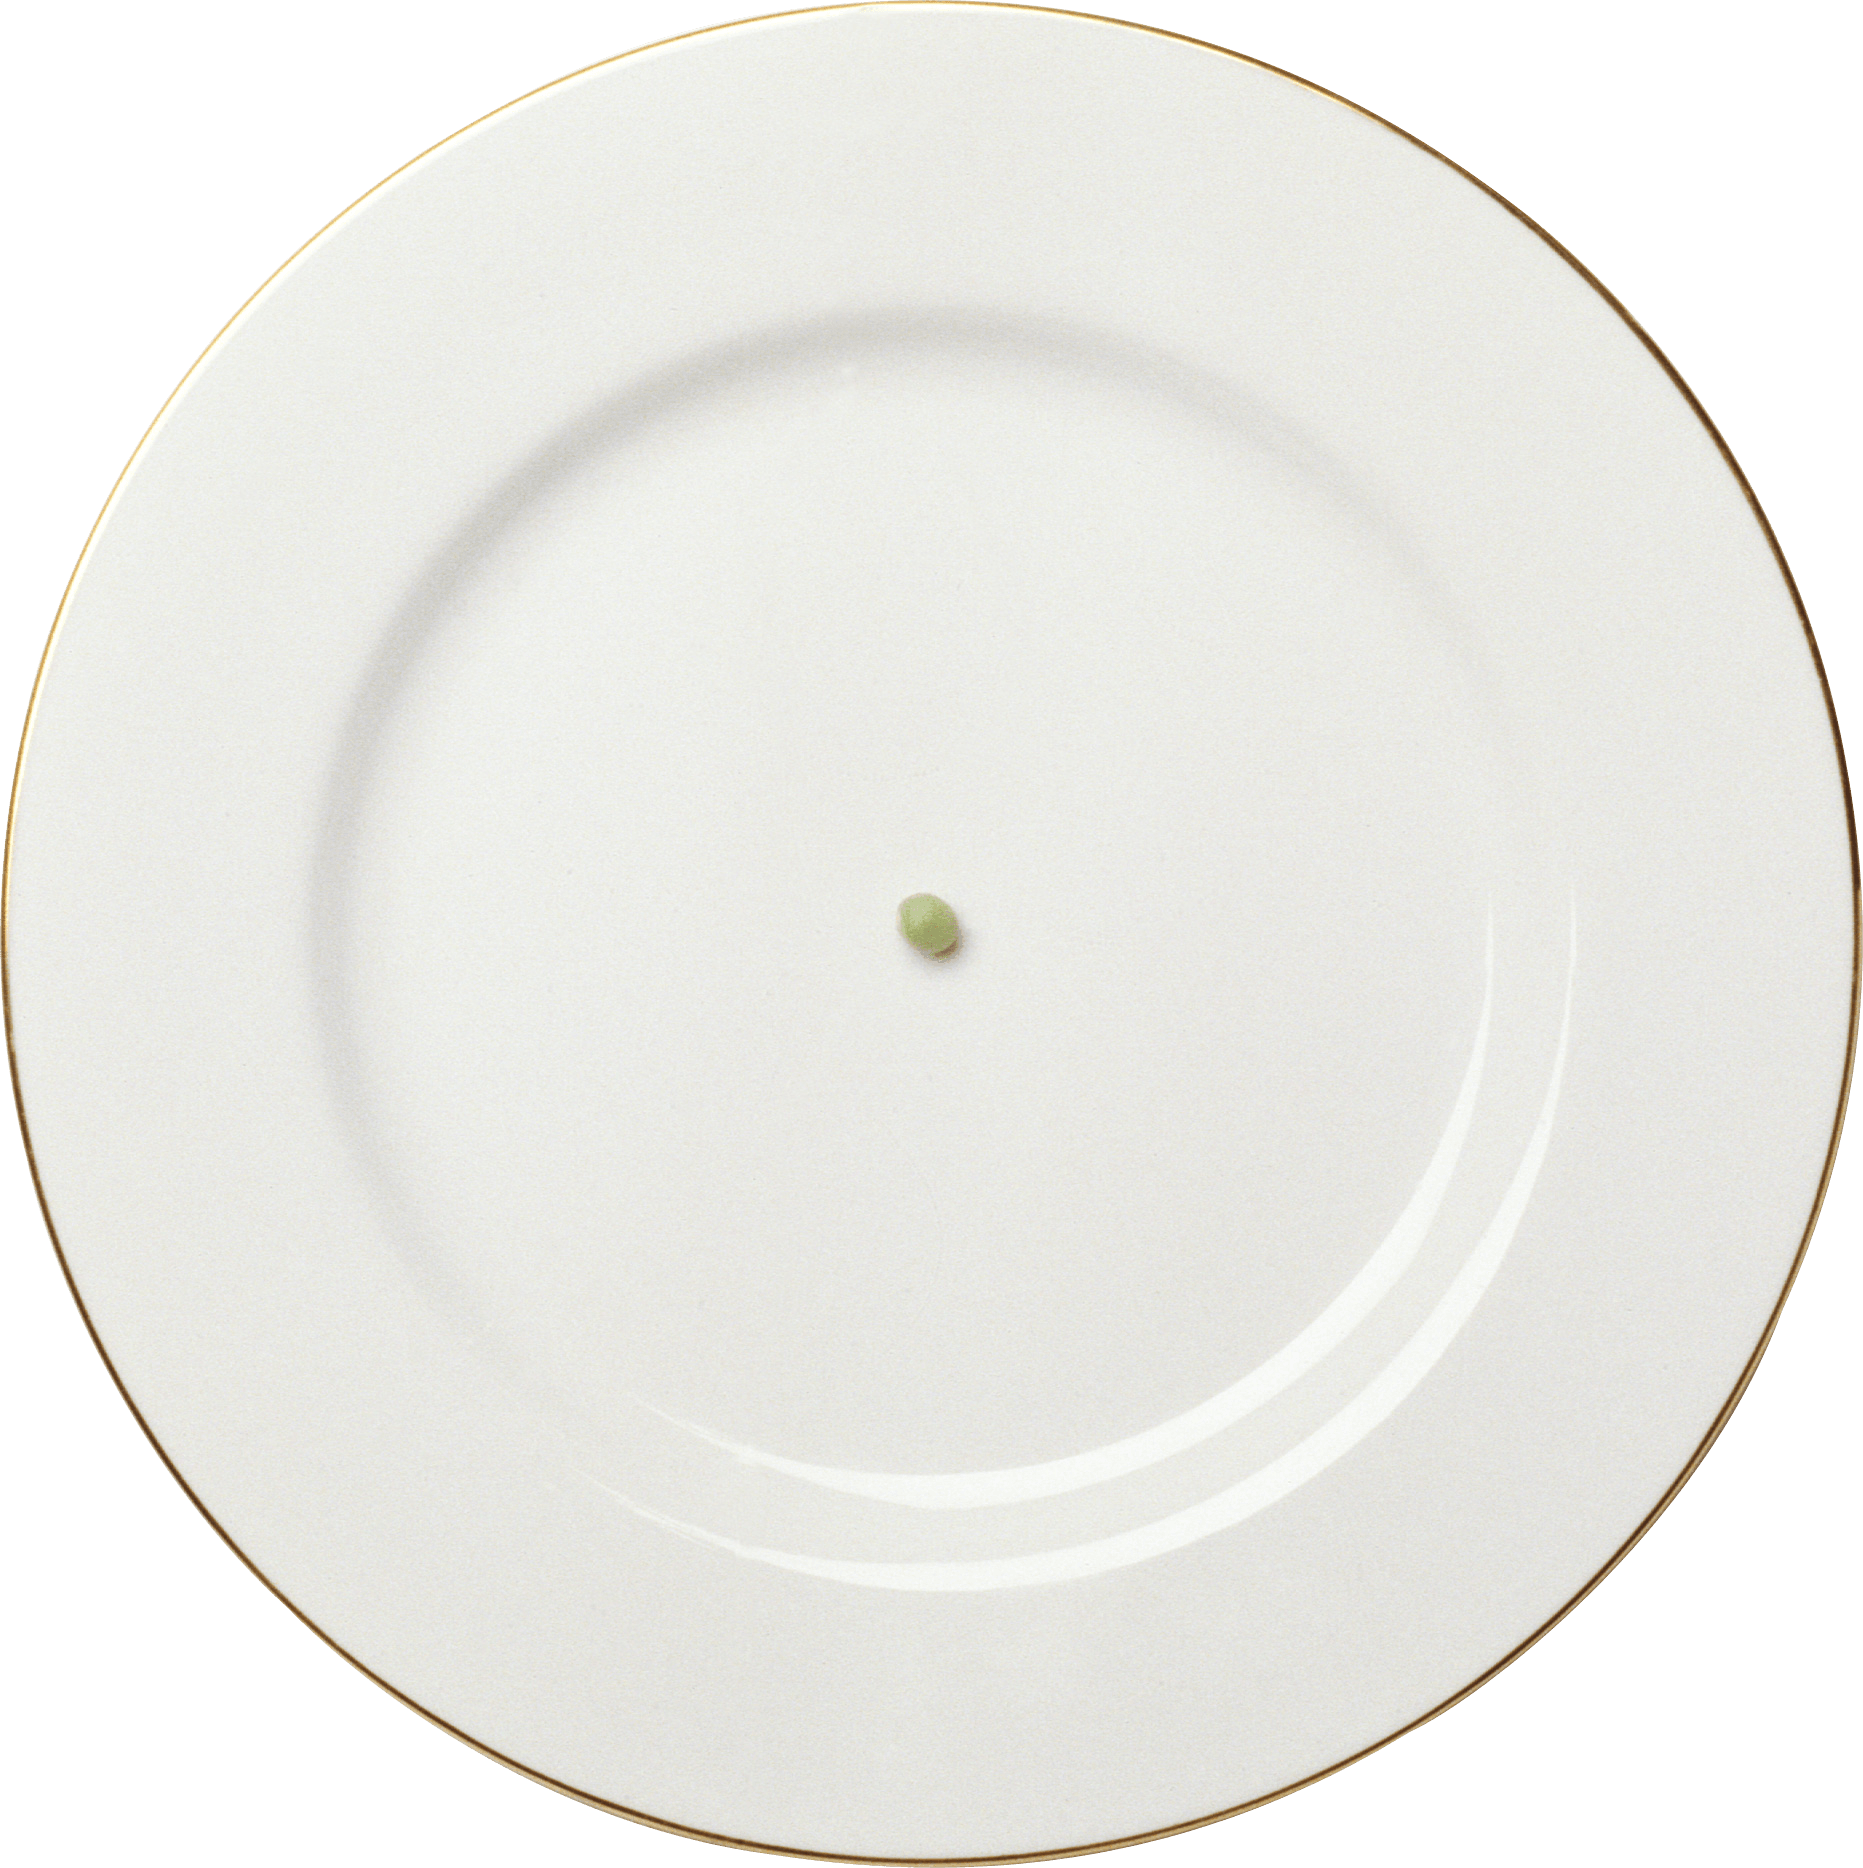 White Plate With Golden Frame Png Image